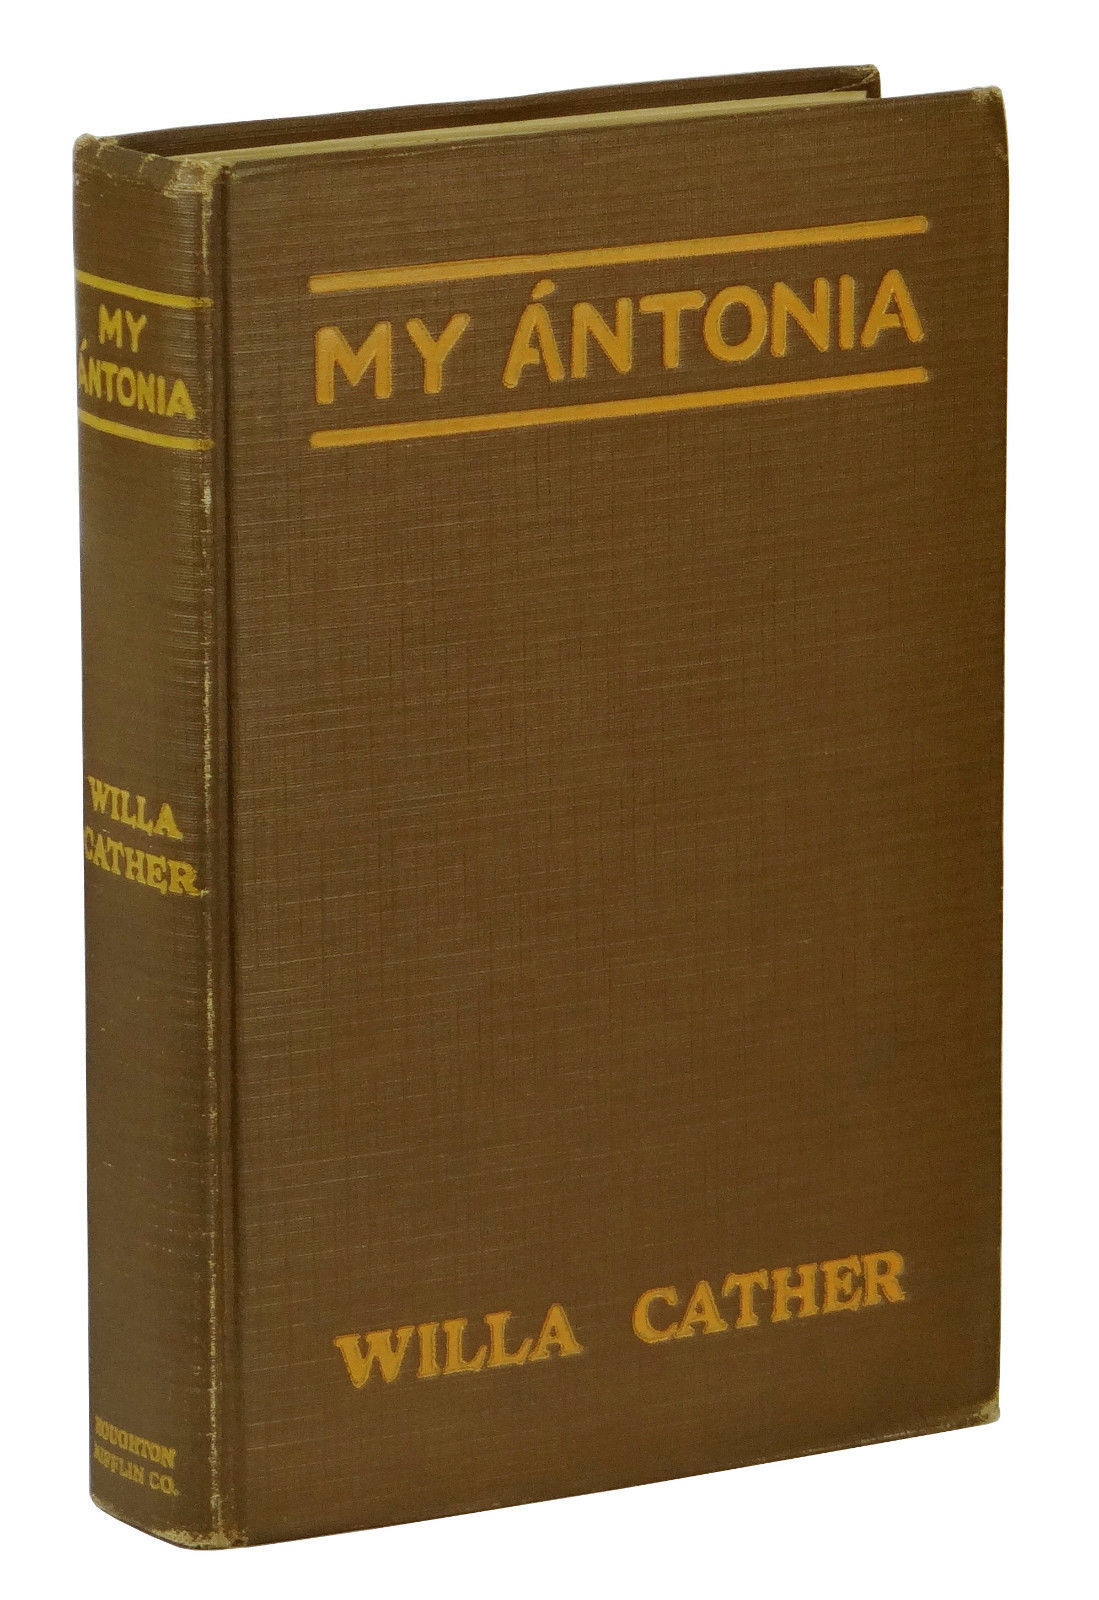 my antonia by willa cather a Various events will be taking place across the state and nation in celebration of the centennial publication of willa cather's my ántonia.